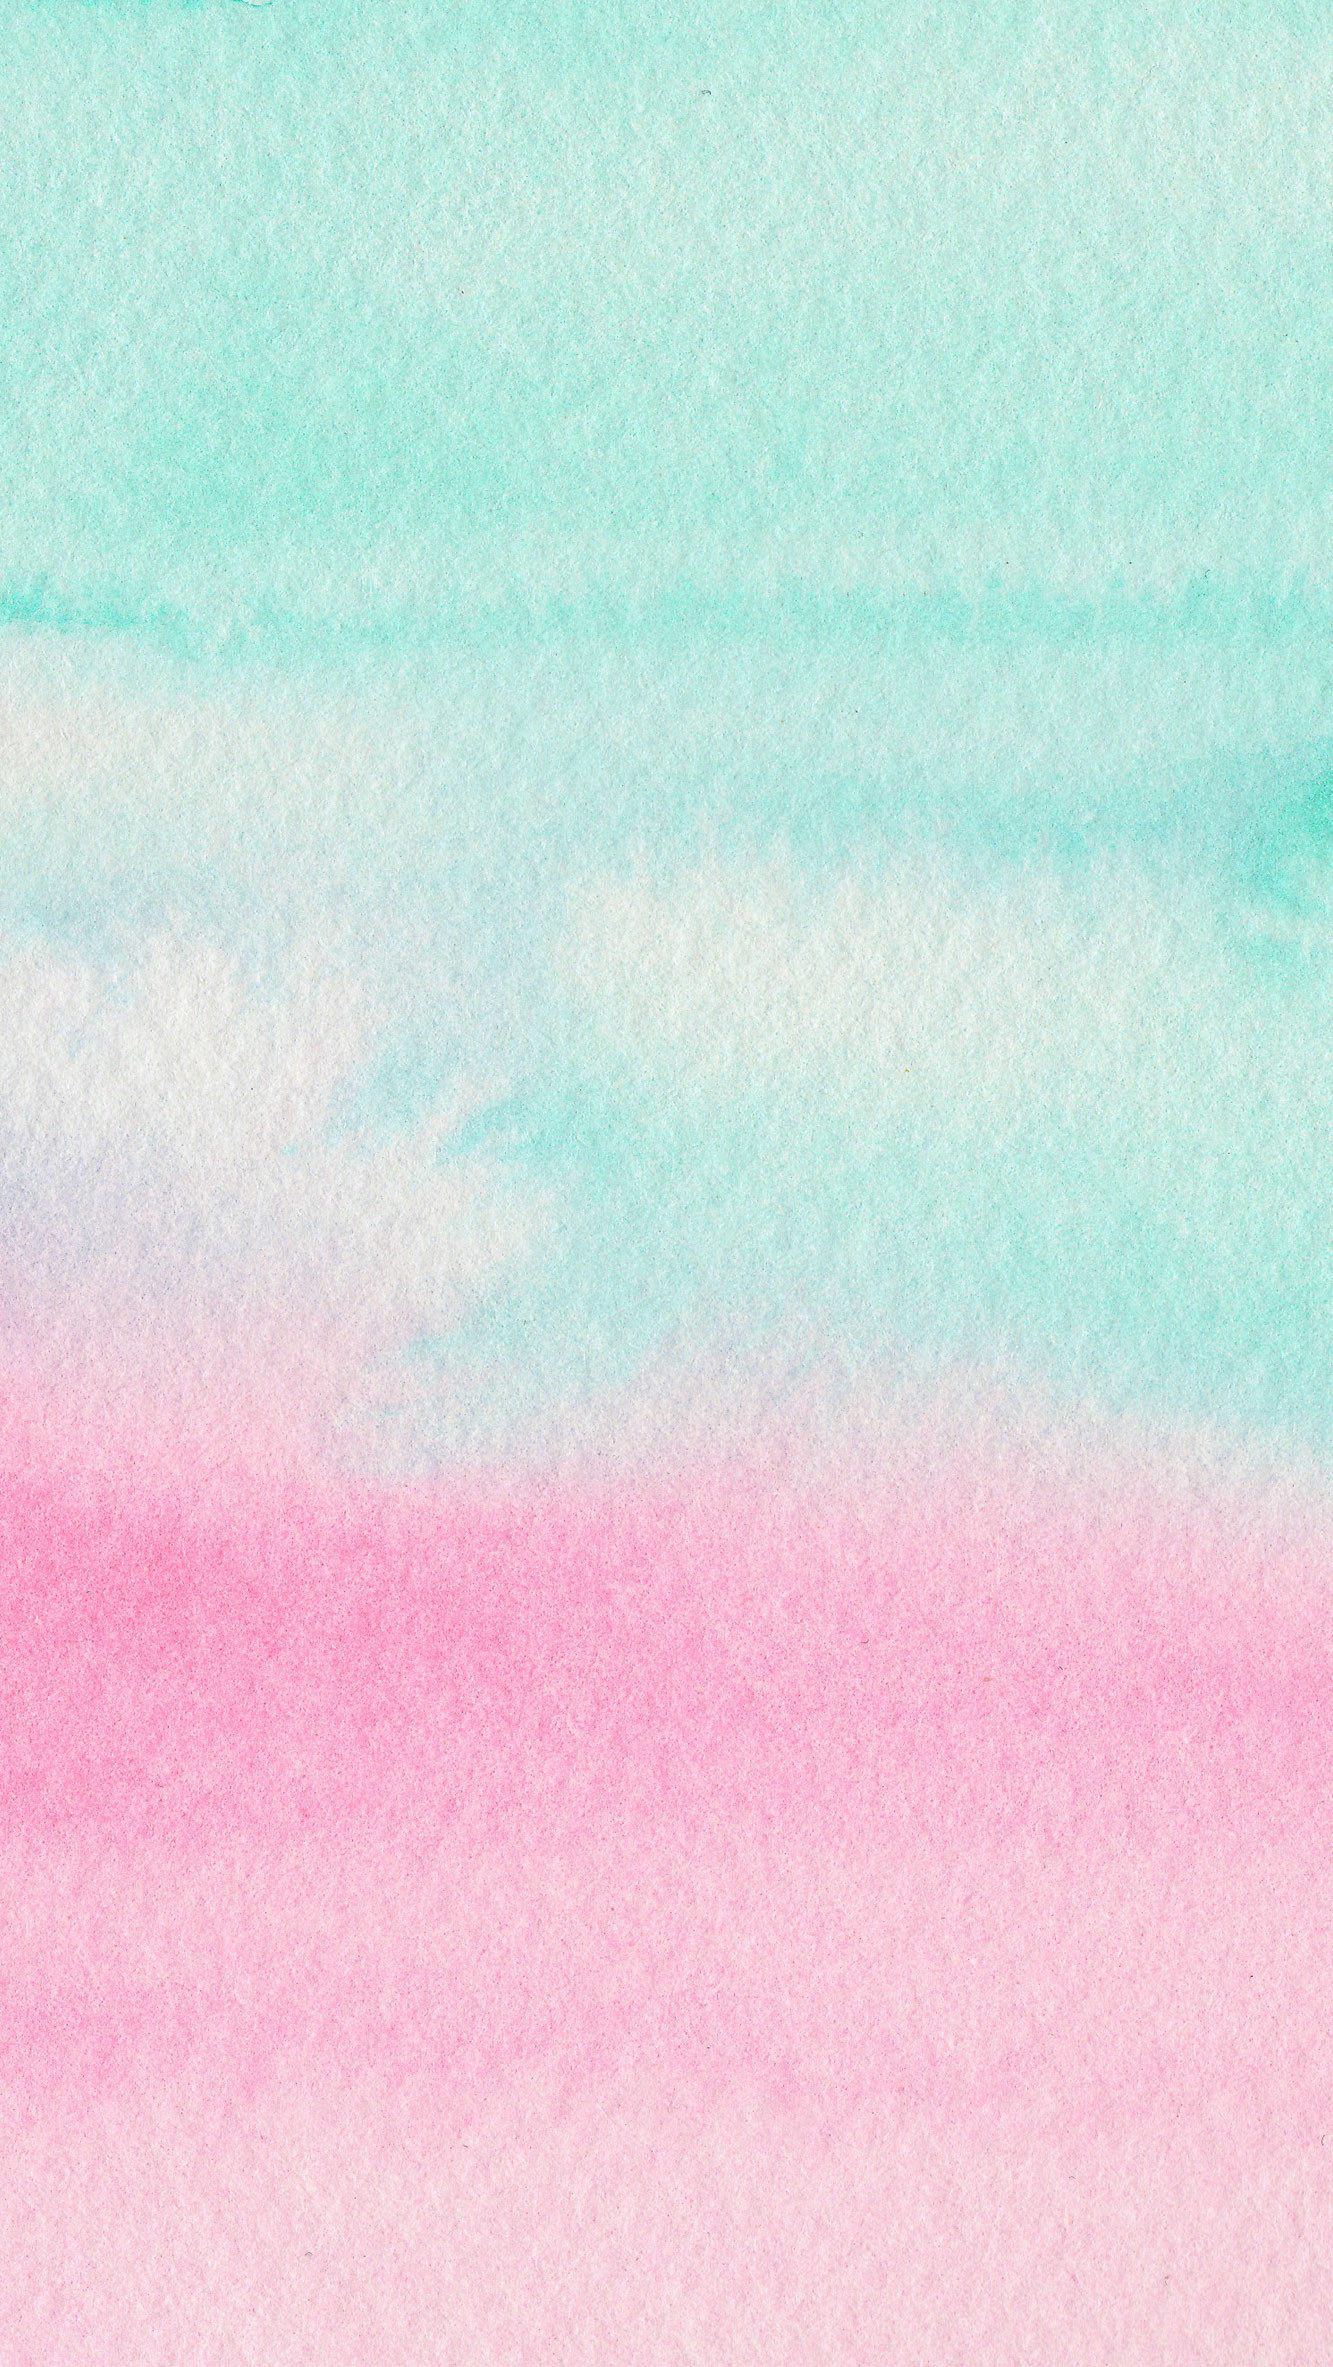 1333x2367 Ombre wallpaper.if you like some cute ombre wallpapers check my pins and  you can